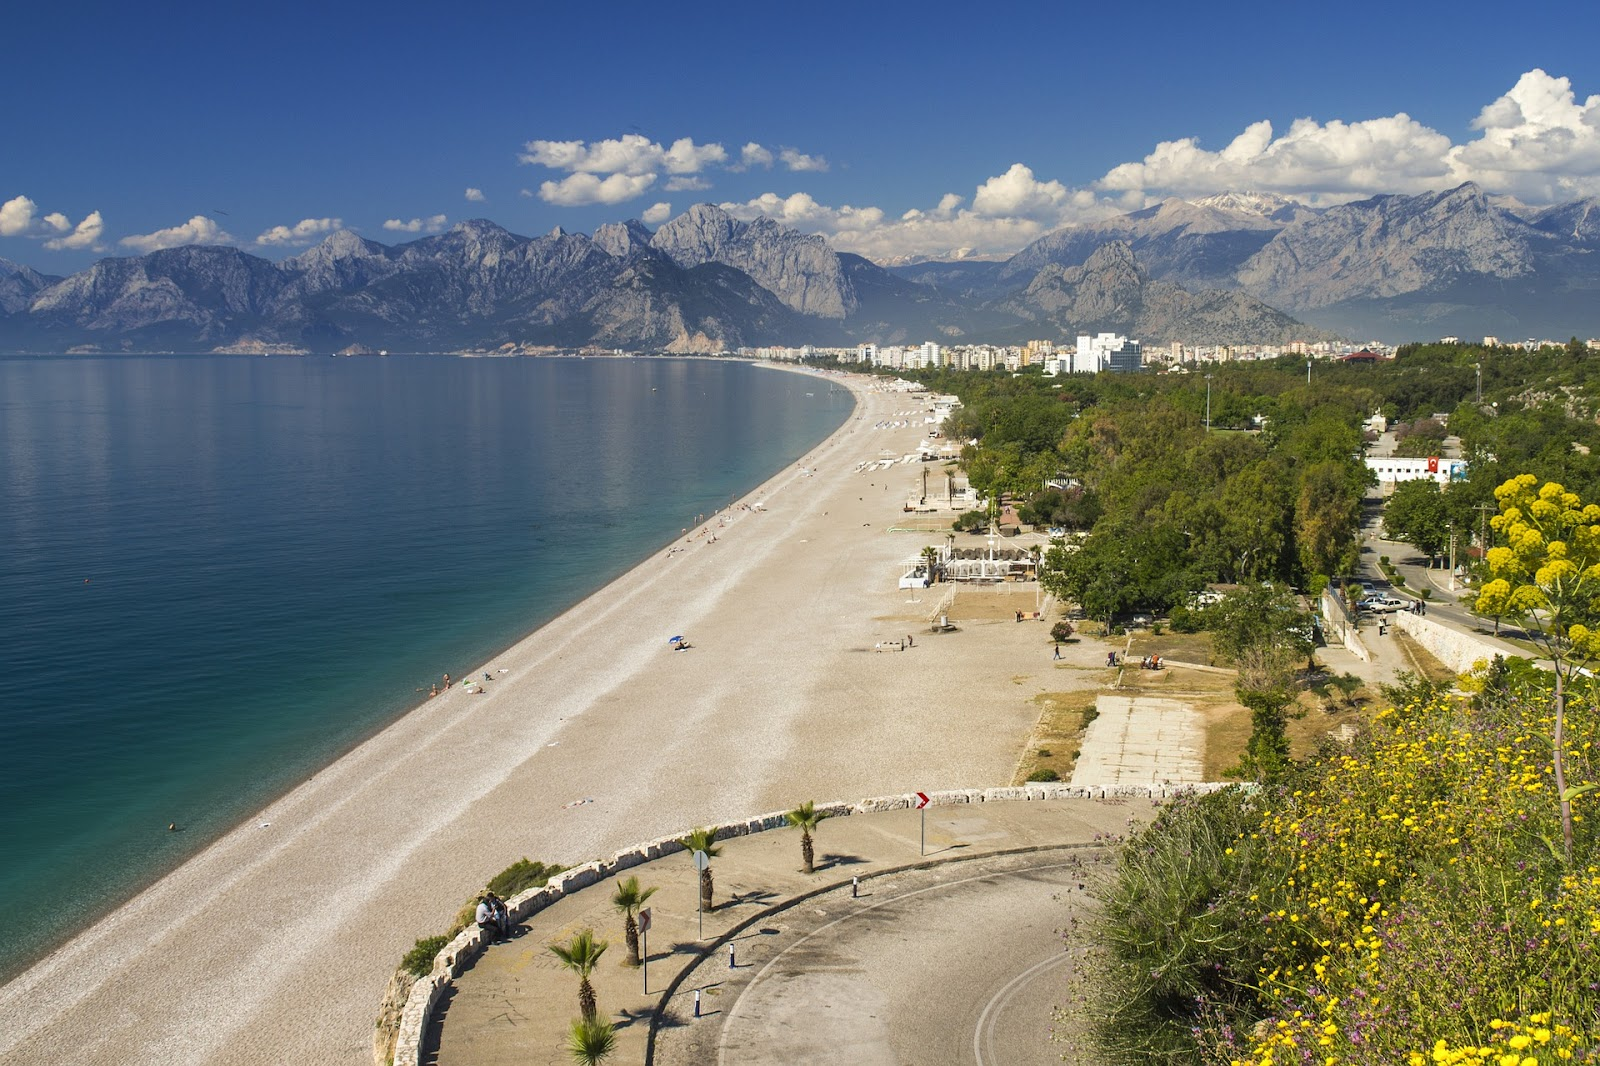 antalya long wide beach calm blue sea mountains in background and curved road in foreground sunny day in turkish riviera